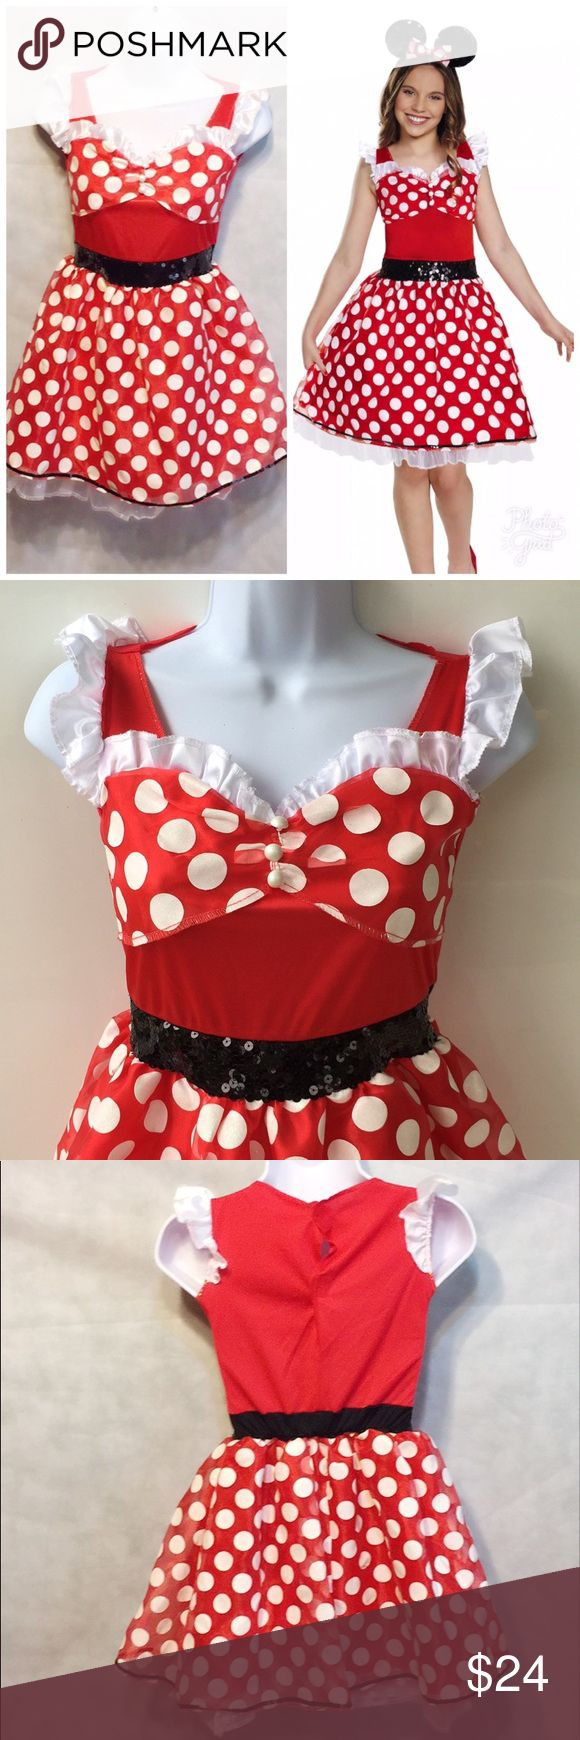 Minnie Mouse Girls Halloween Costume Large 10-12 Disney Red Minnie Mouse Tween Girls Fancy Dress Halloween Costume Size Large 10-12  Includes: 1x Dress  1x Headband   Size Large 10-12  Height: 54-60 in (137-152 cm) Chest: 30.5 in (77 cm) Waist: 27 in (69 cm) Hip: 32 in (81 cm) Disguise Costumes Halloween